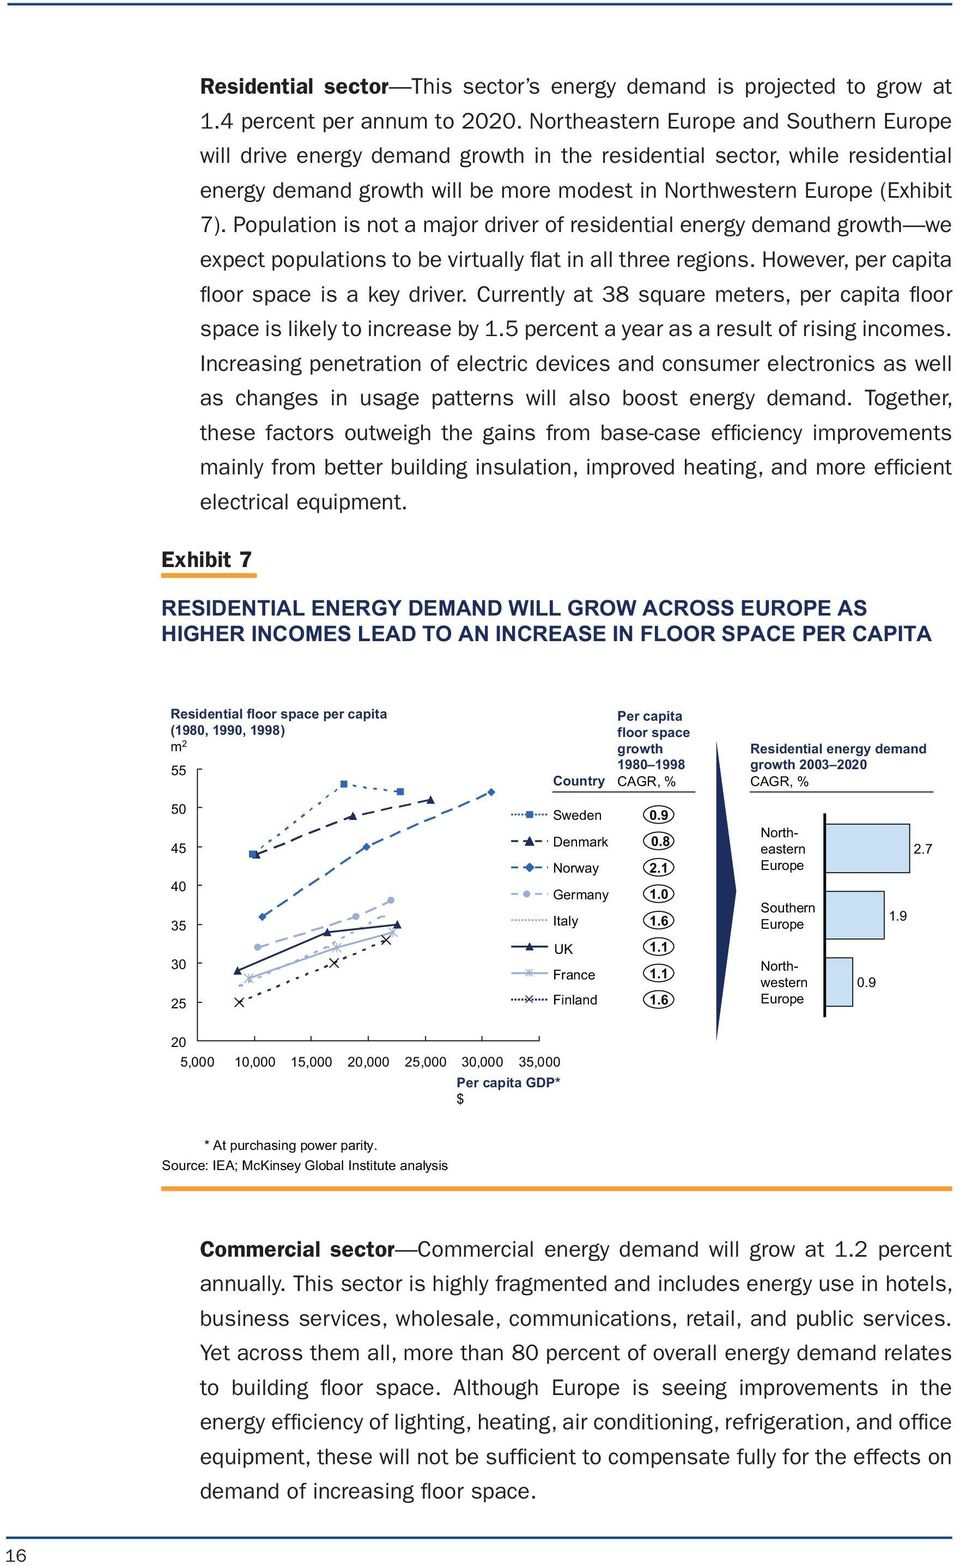 Population is not a major driver of residential energy demand growth we expect populations to be virtually flat in all three regions. However, per capita floor space is a key driver.